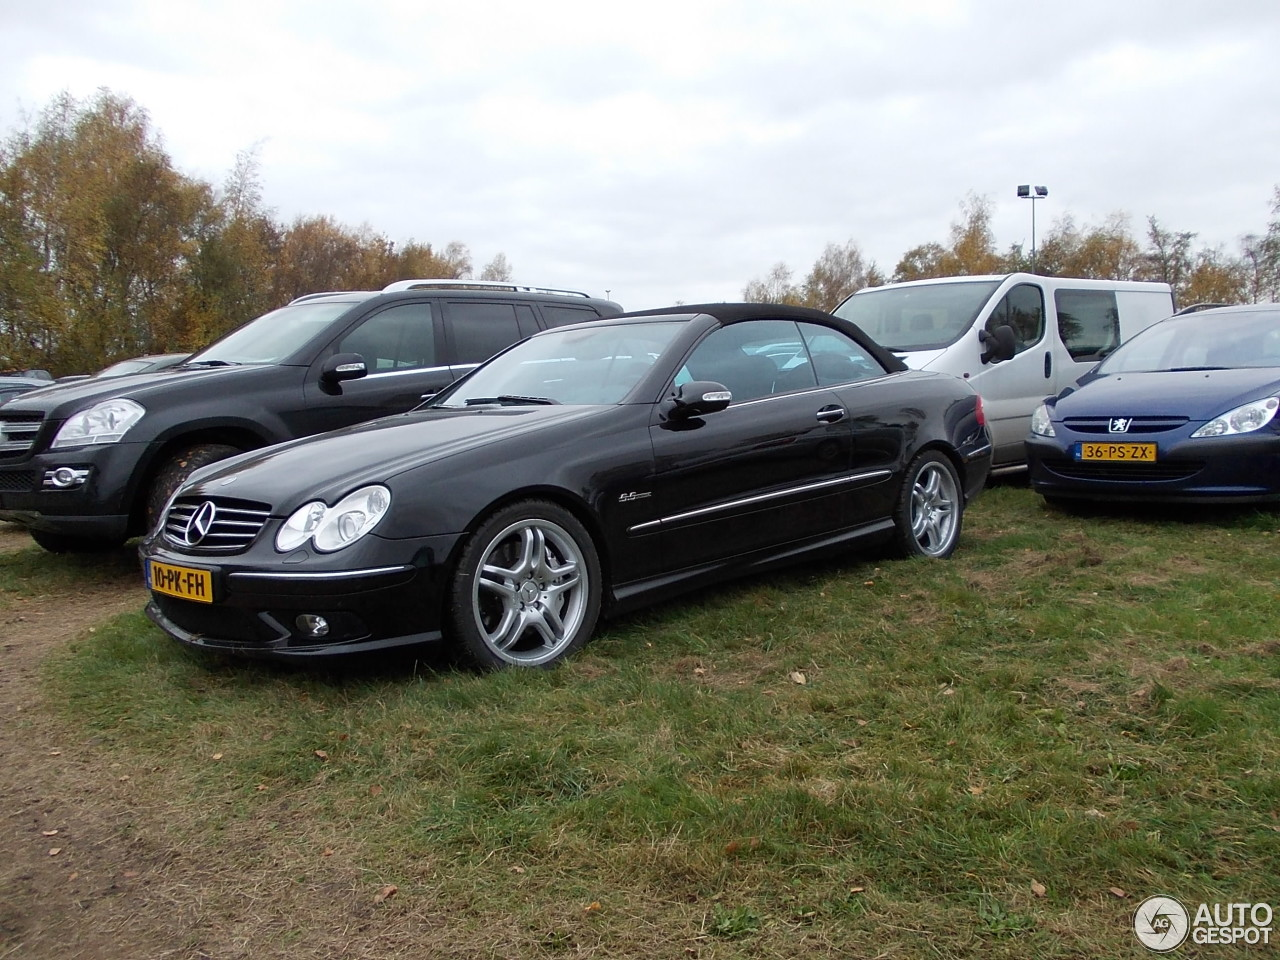 mercedes benz clk 55 amg cabriolet 8 november 2015 autogespot. Black Bedroom Furniture Sets. Home Design Ideas